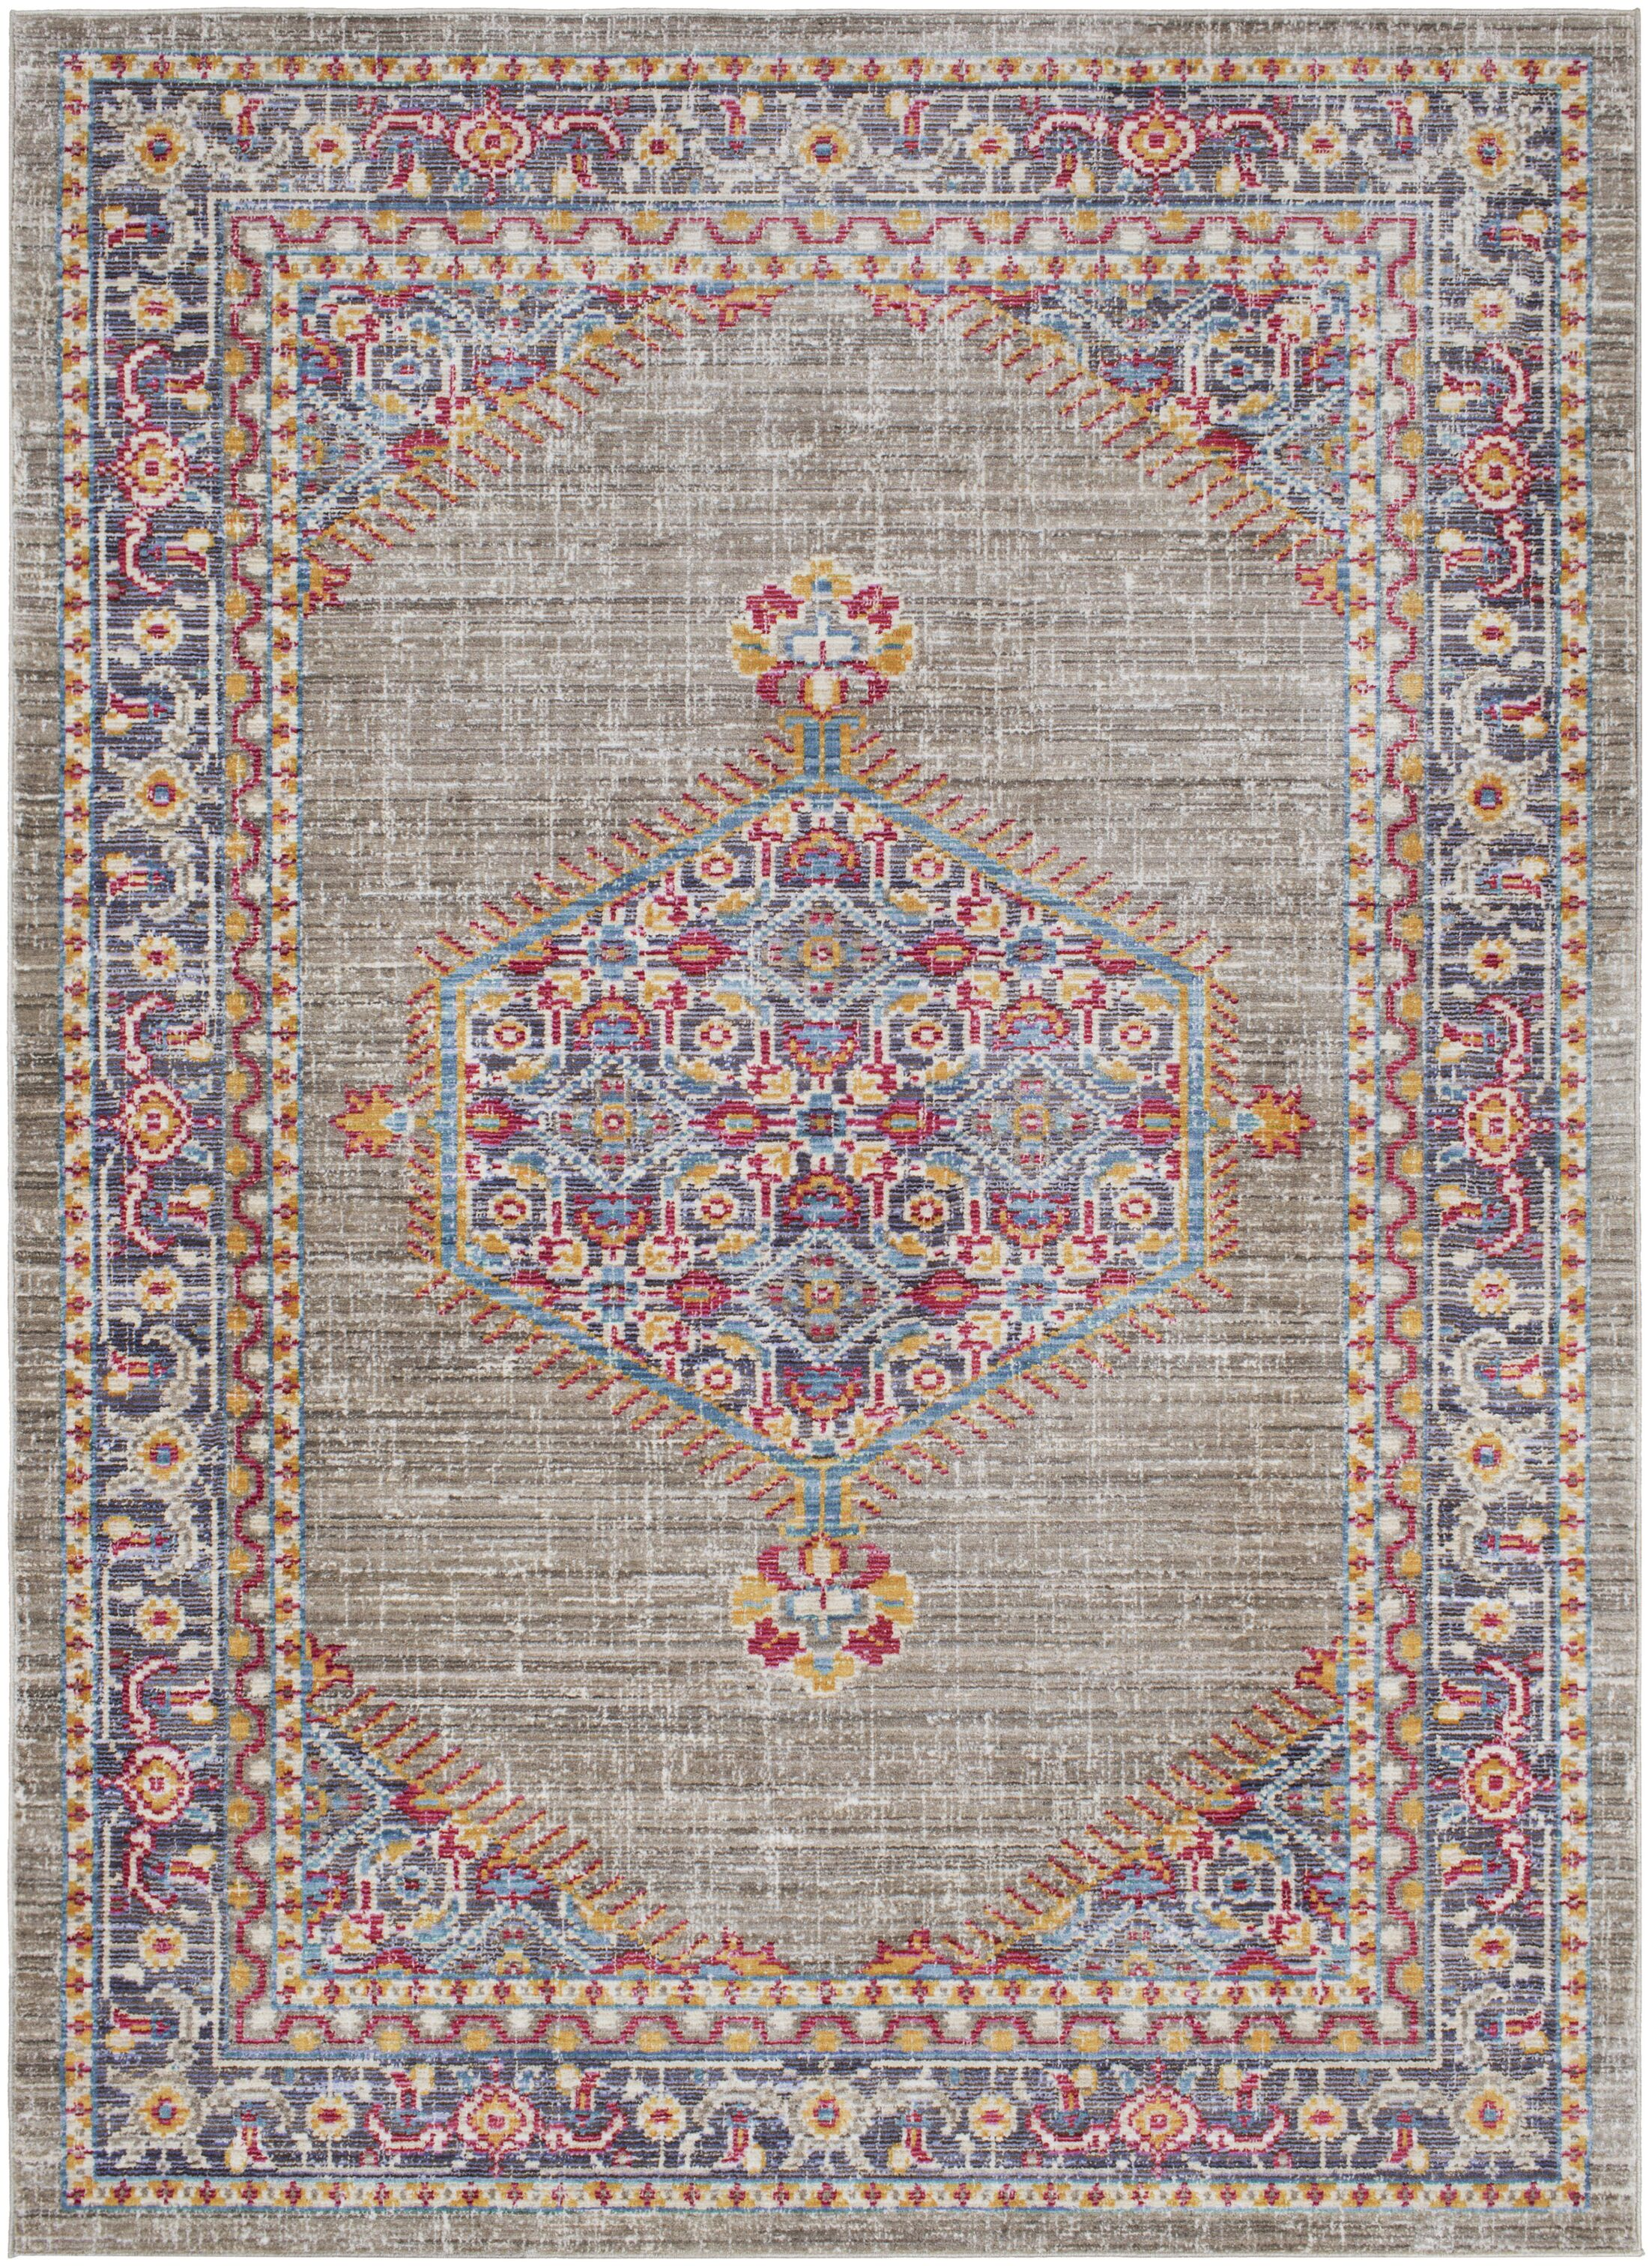 Fields Contemporary Violet/Taupe Area Rug Rug Size: Rectangle 5'3